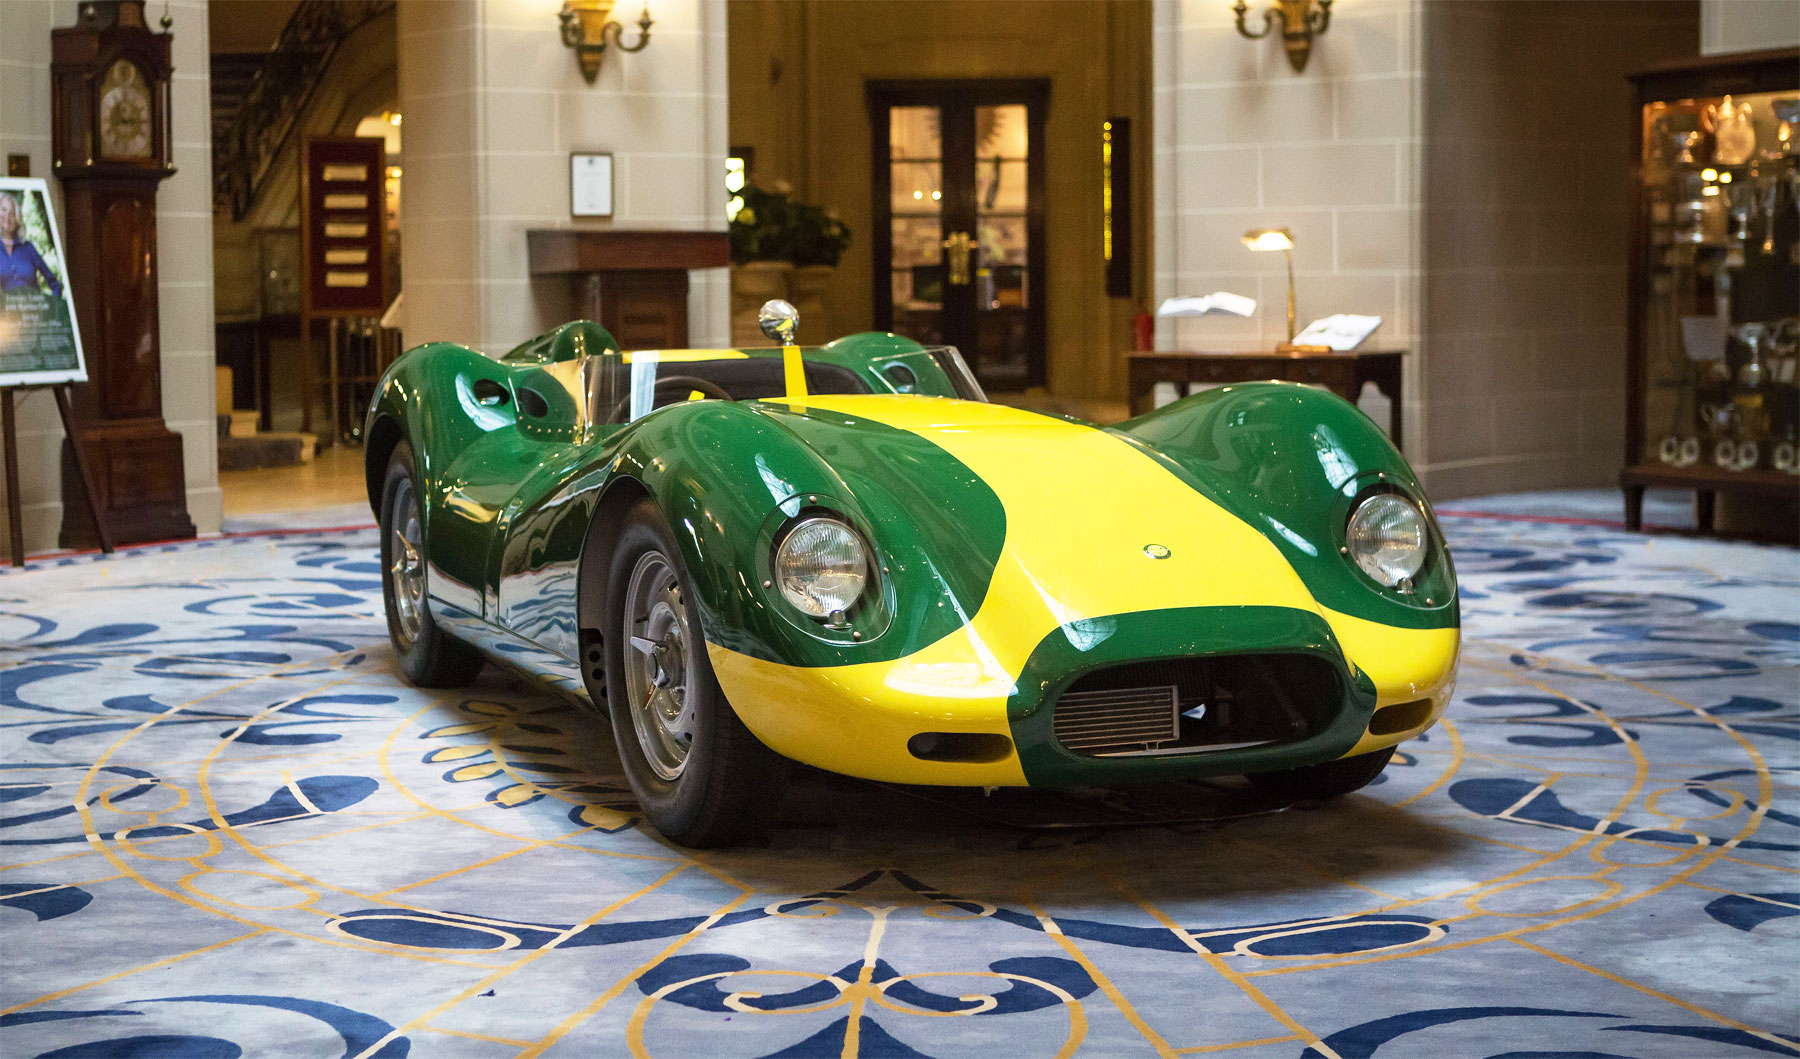 The £1 million+ Special Edition Lister Knobbly Jaguar Stirling Moss